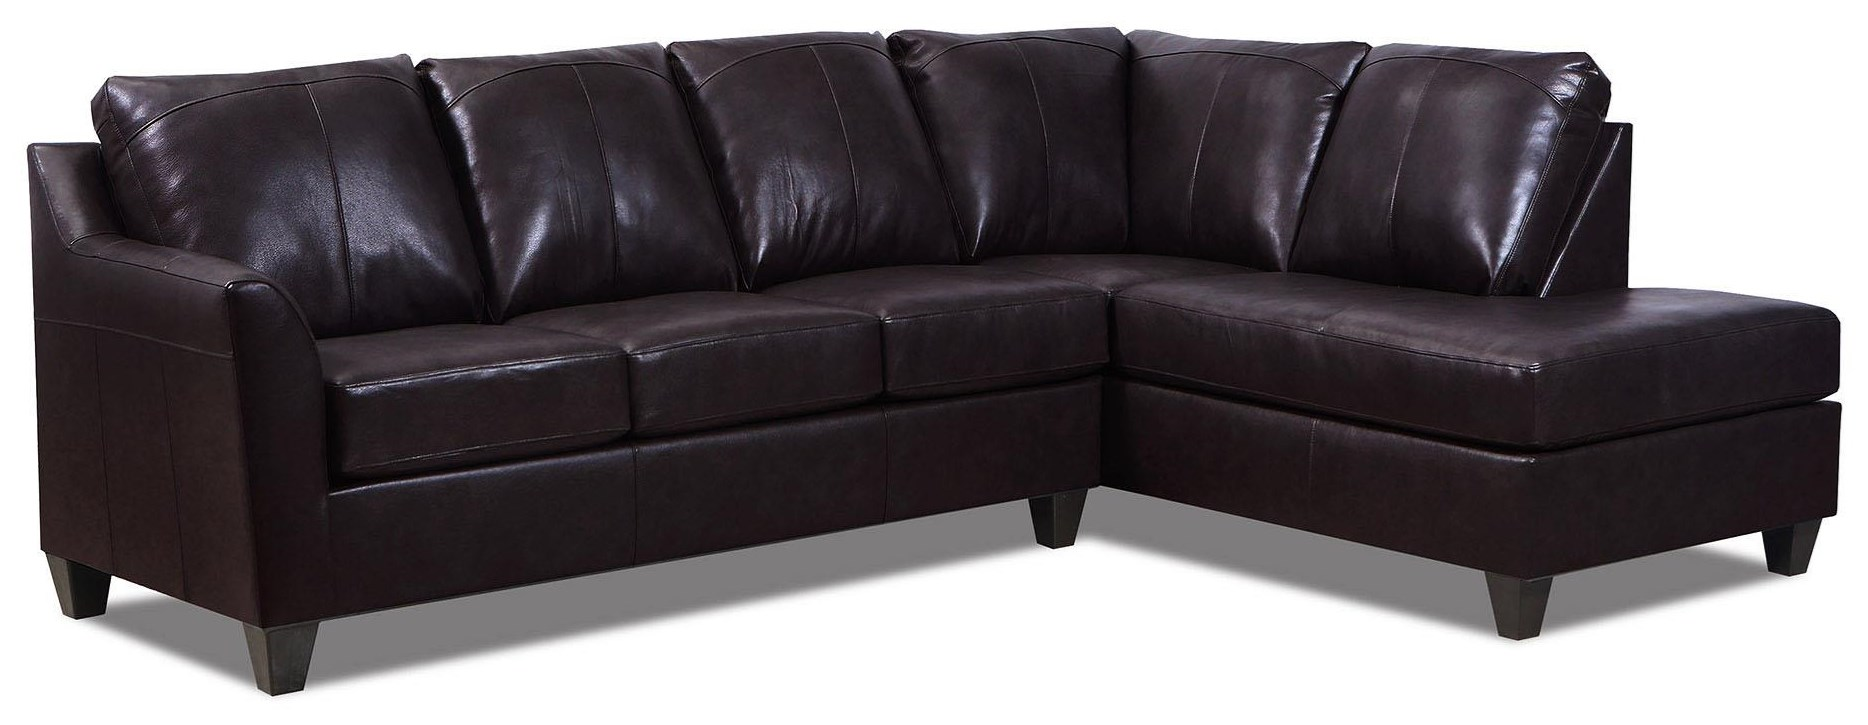 2 PC Chaise Sectional